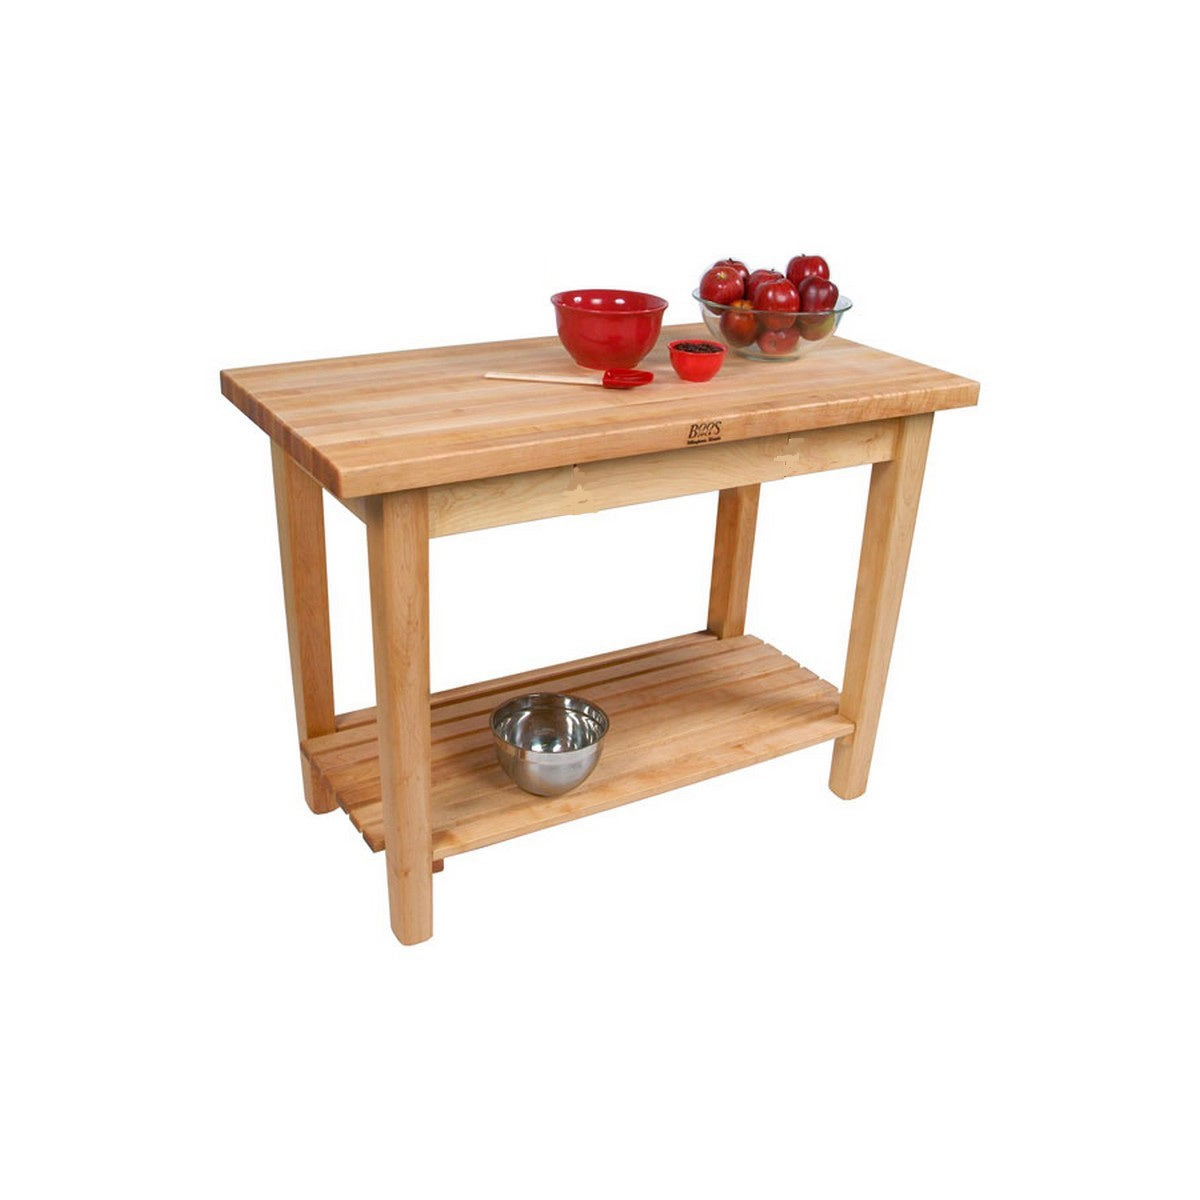 John Boos C10-D-S Country Maple 48x36x35 Work Table with Drawer ...